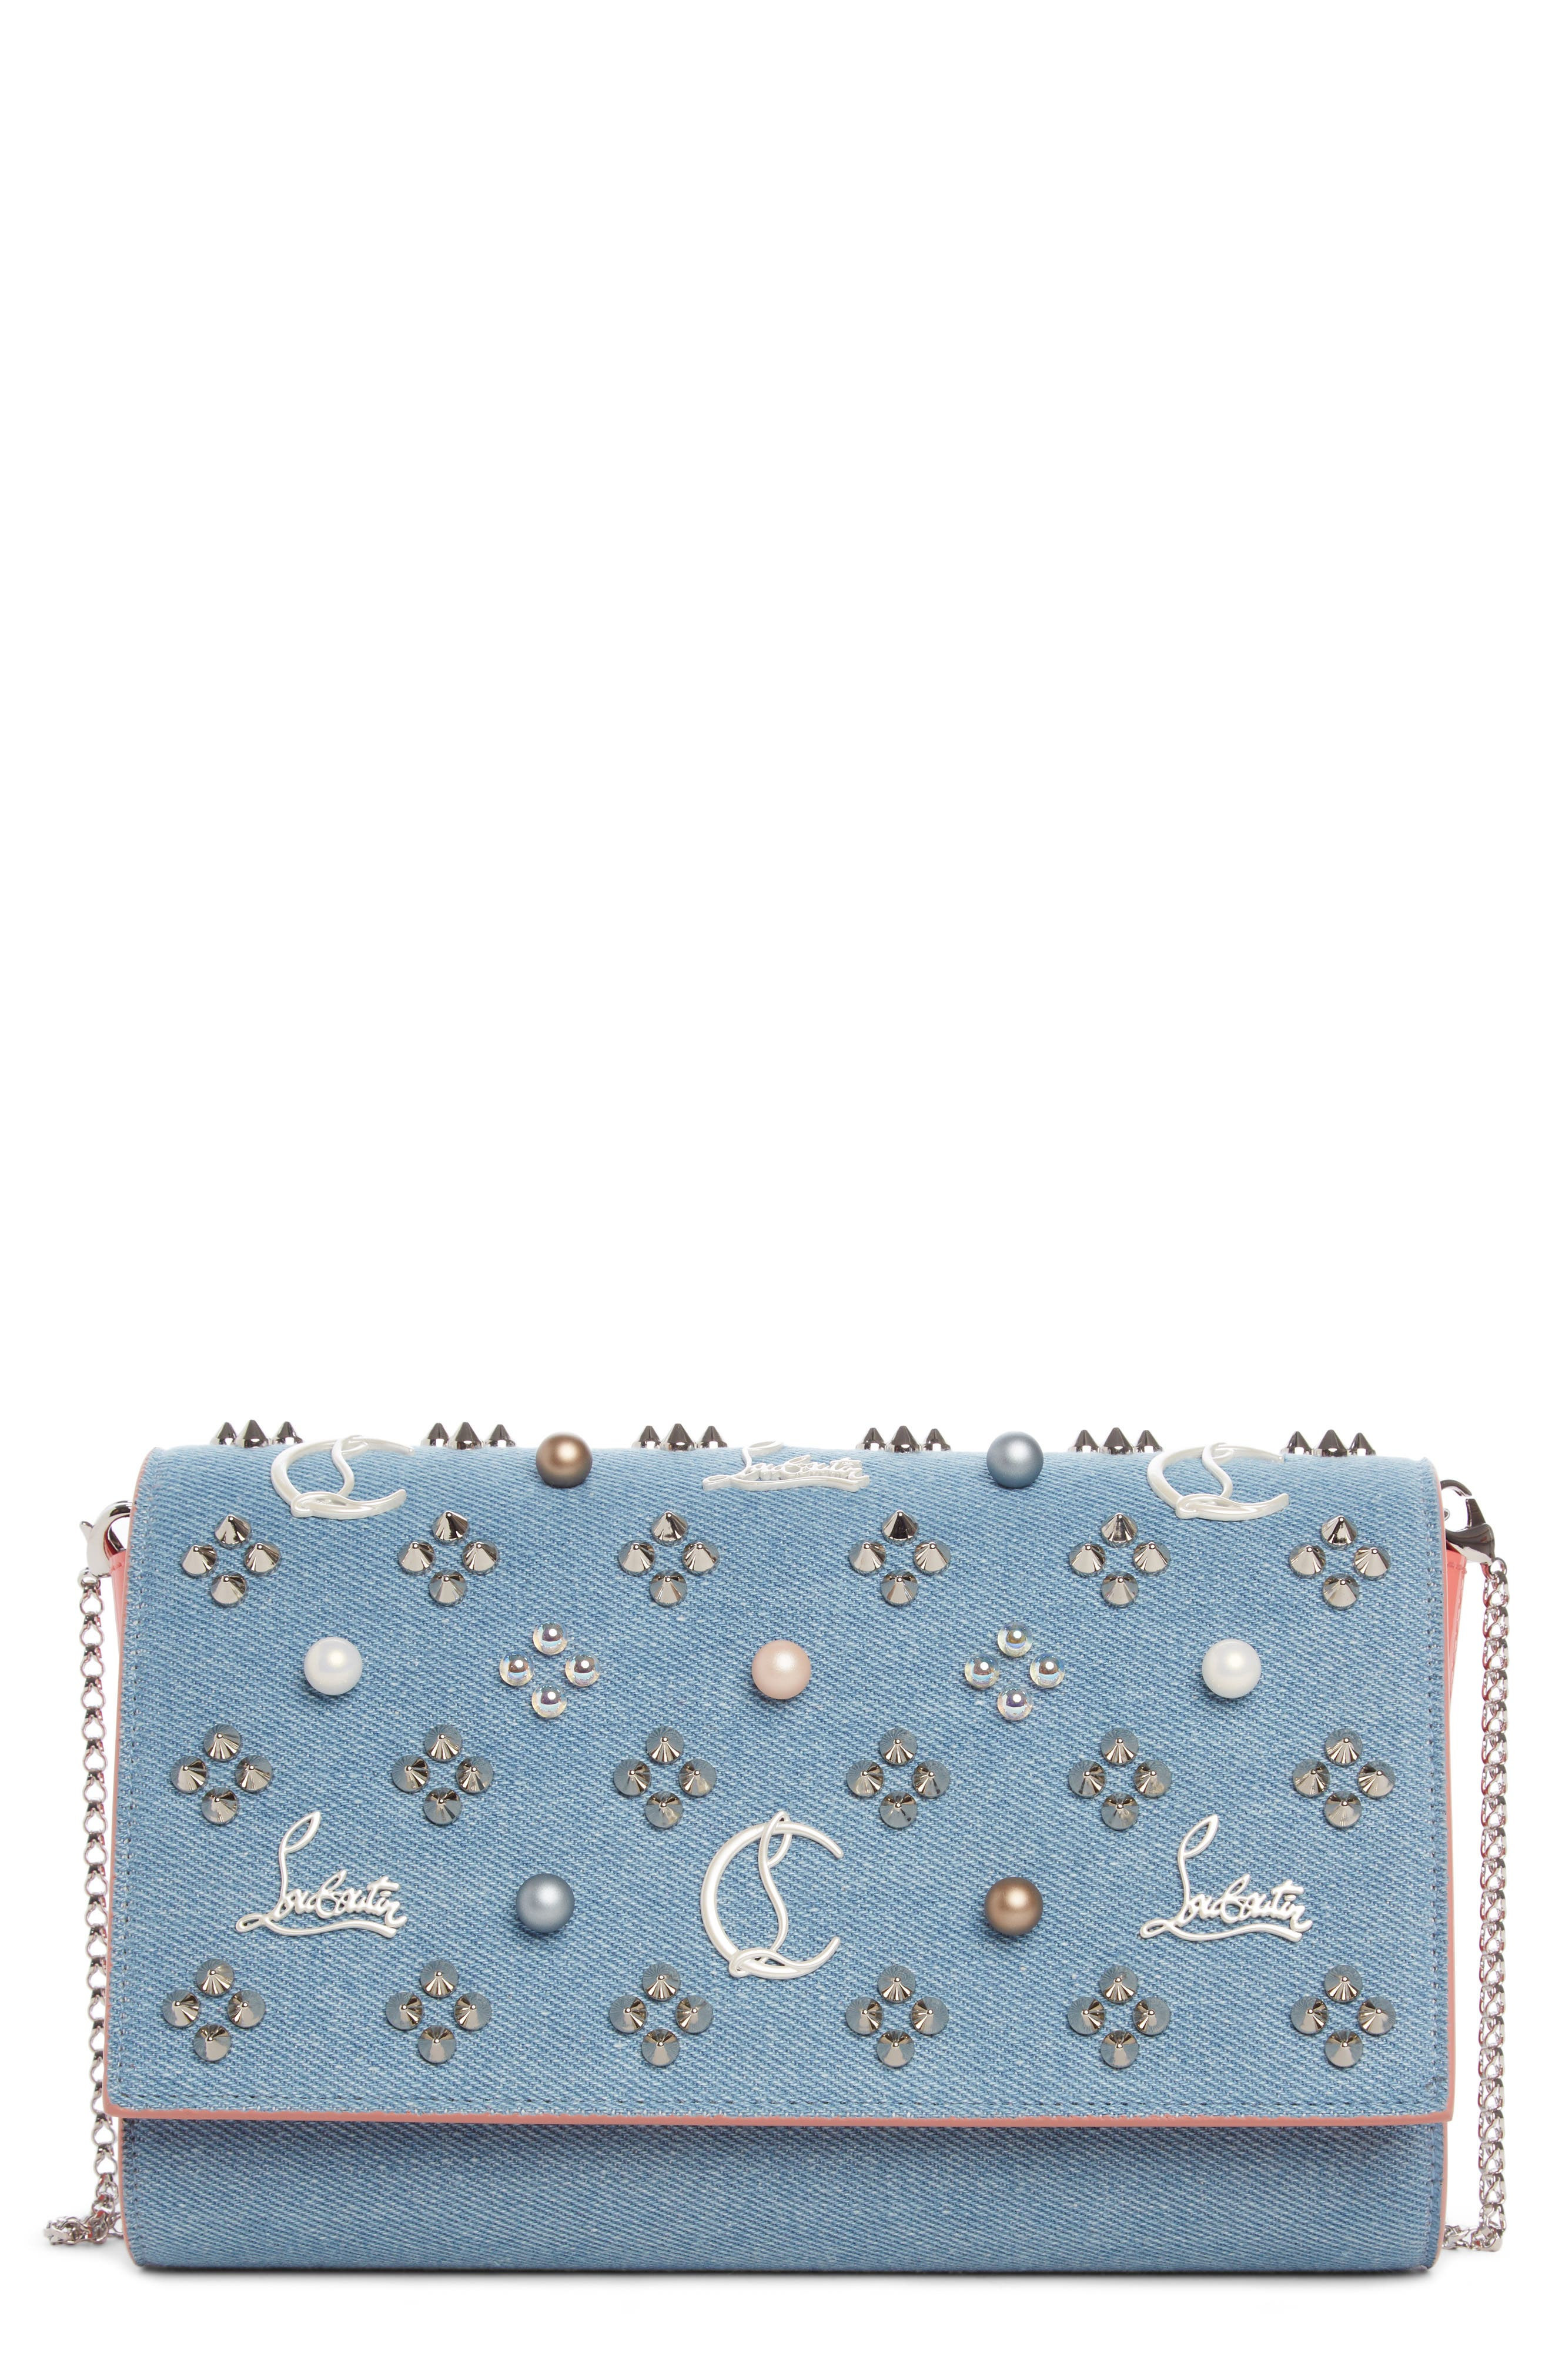 Christian Louboutin Paloma Studded Denim Clutch